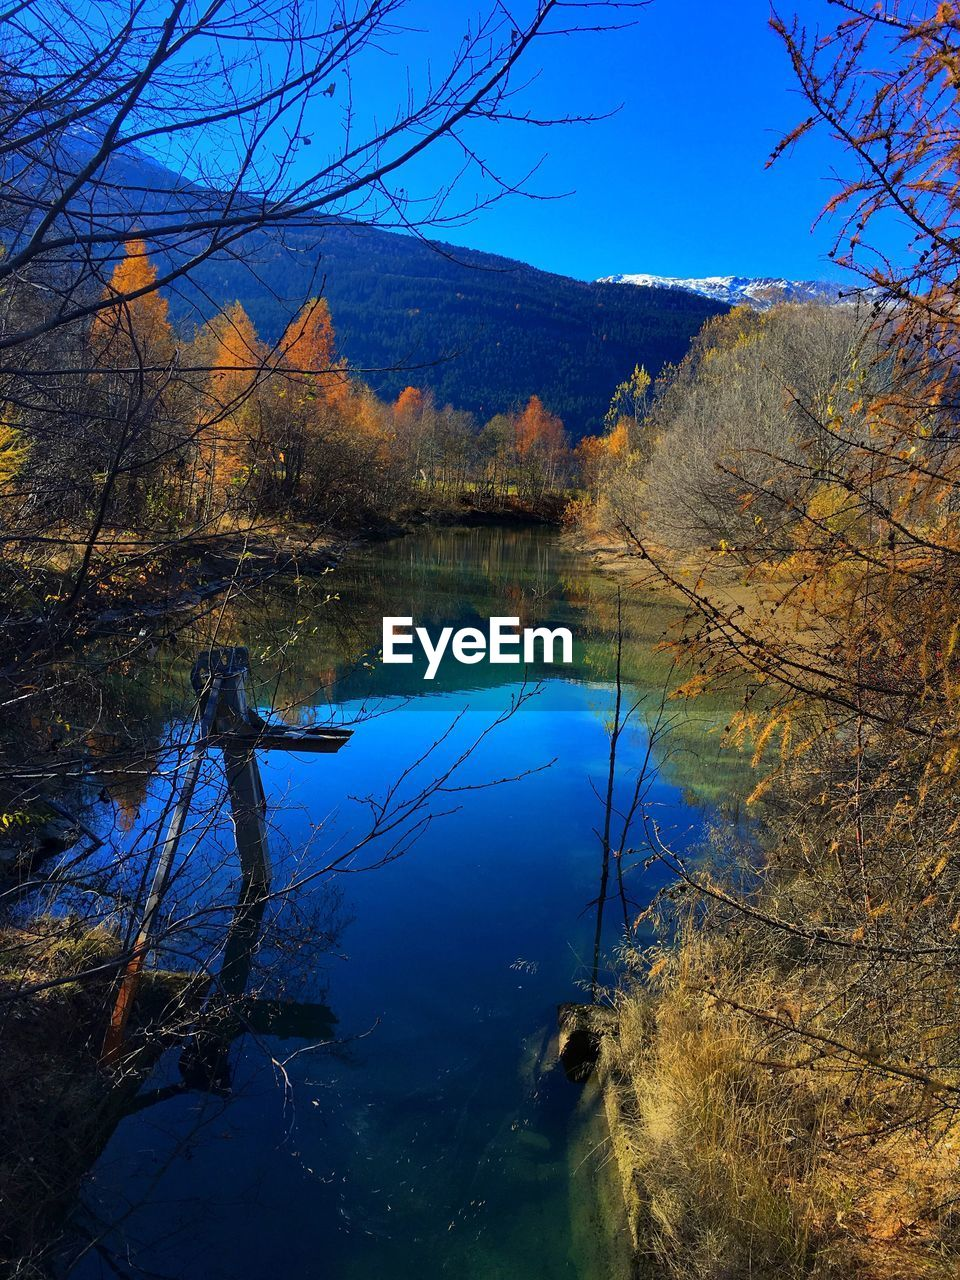 tree, nature, reflection, tranquility, tranquil scene, beauty in nature, no people, blue, scenics, lake, sky, outdoors, day, water, bare tree, growth, branch, autumn, mountain